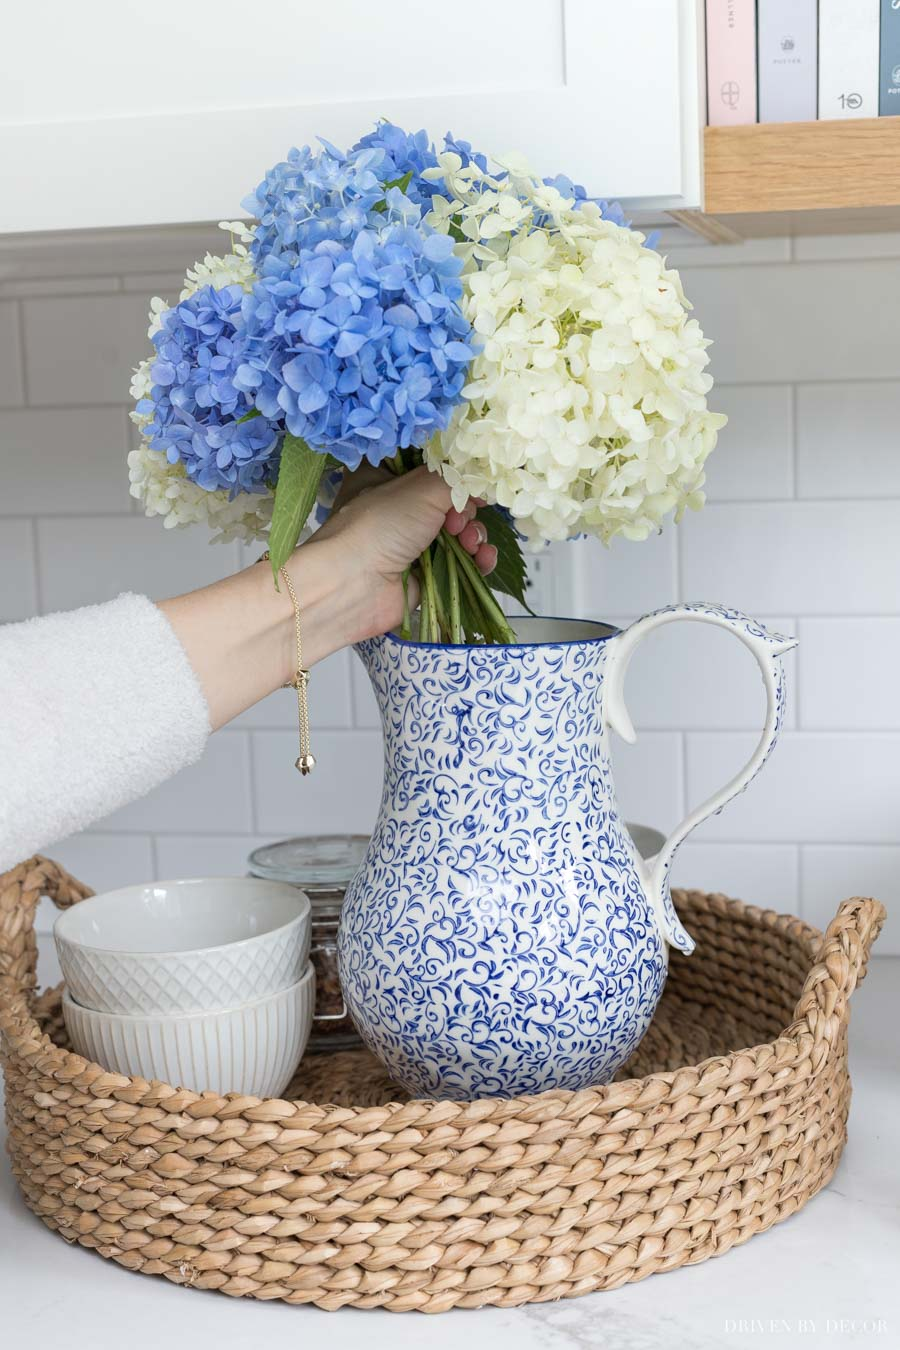 Loving this blue and white pitcher! So pretty as a vase!